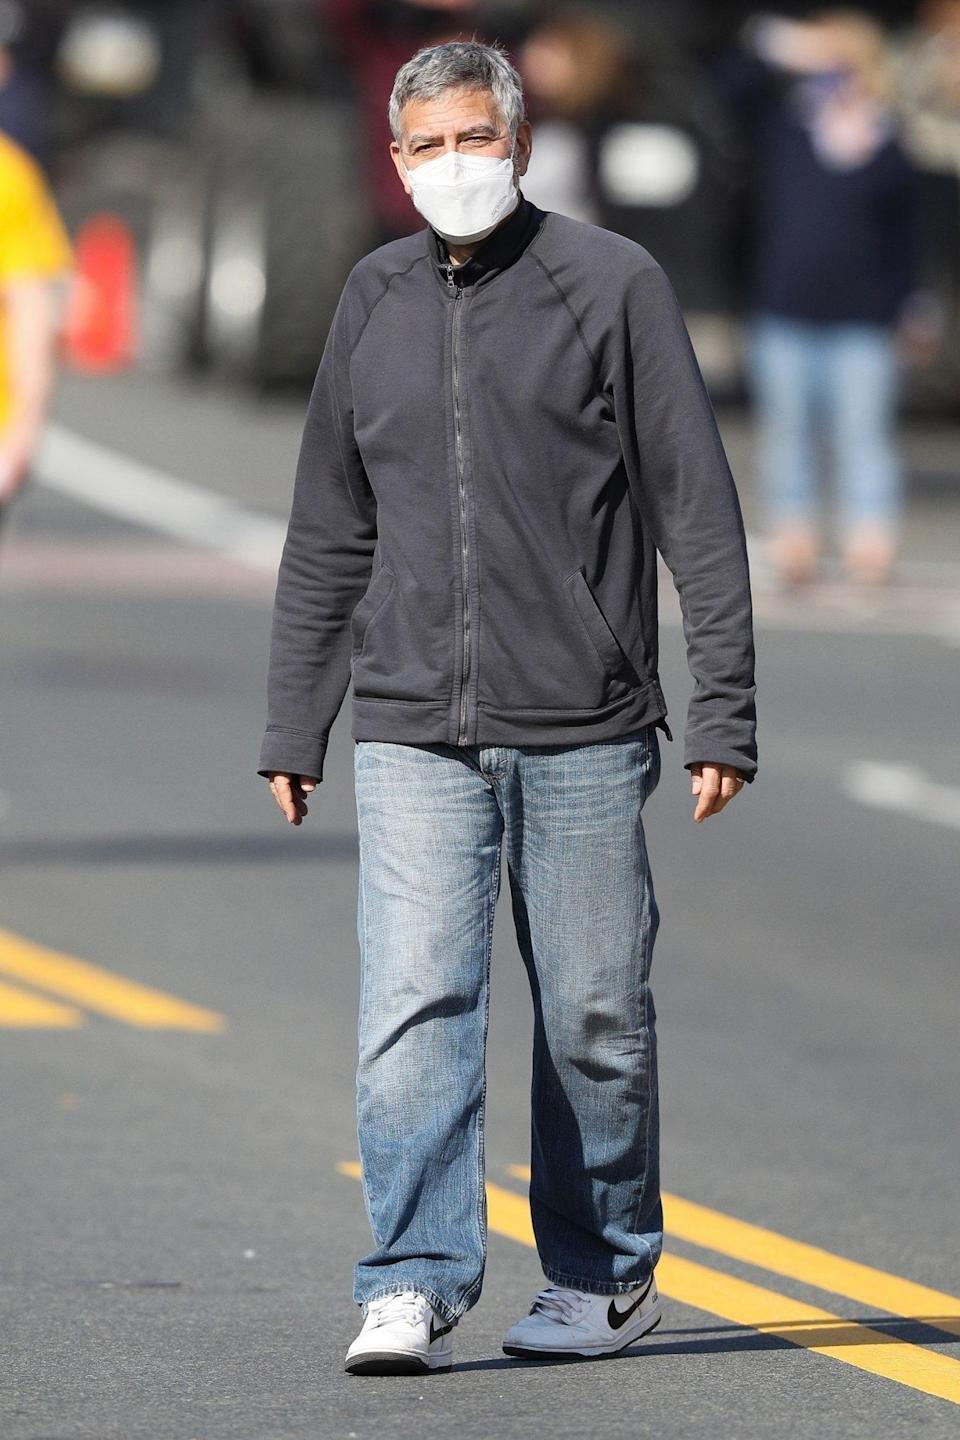 <p>George Clooney is spotted between takes directing <i>The Tender Bar</i> on Thursday in Beverly, Massachusetts. </p>